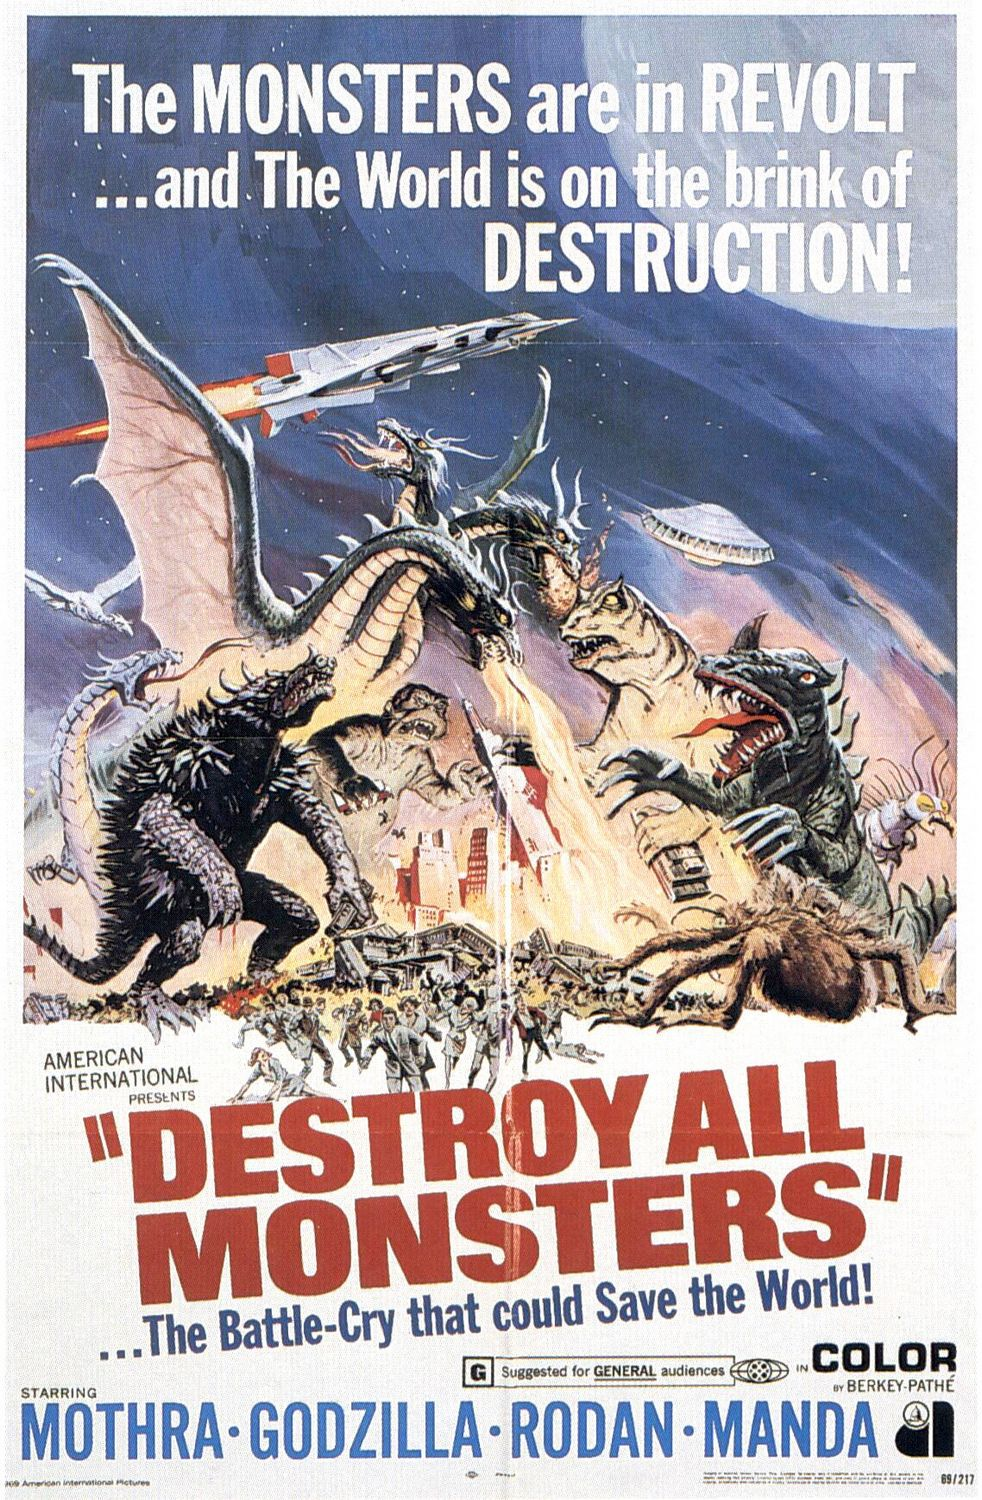 Destroy all Monsters - Distruggete i Mostri (1969) - special cult classic film poster